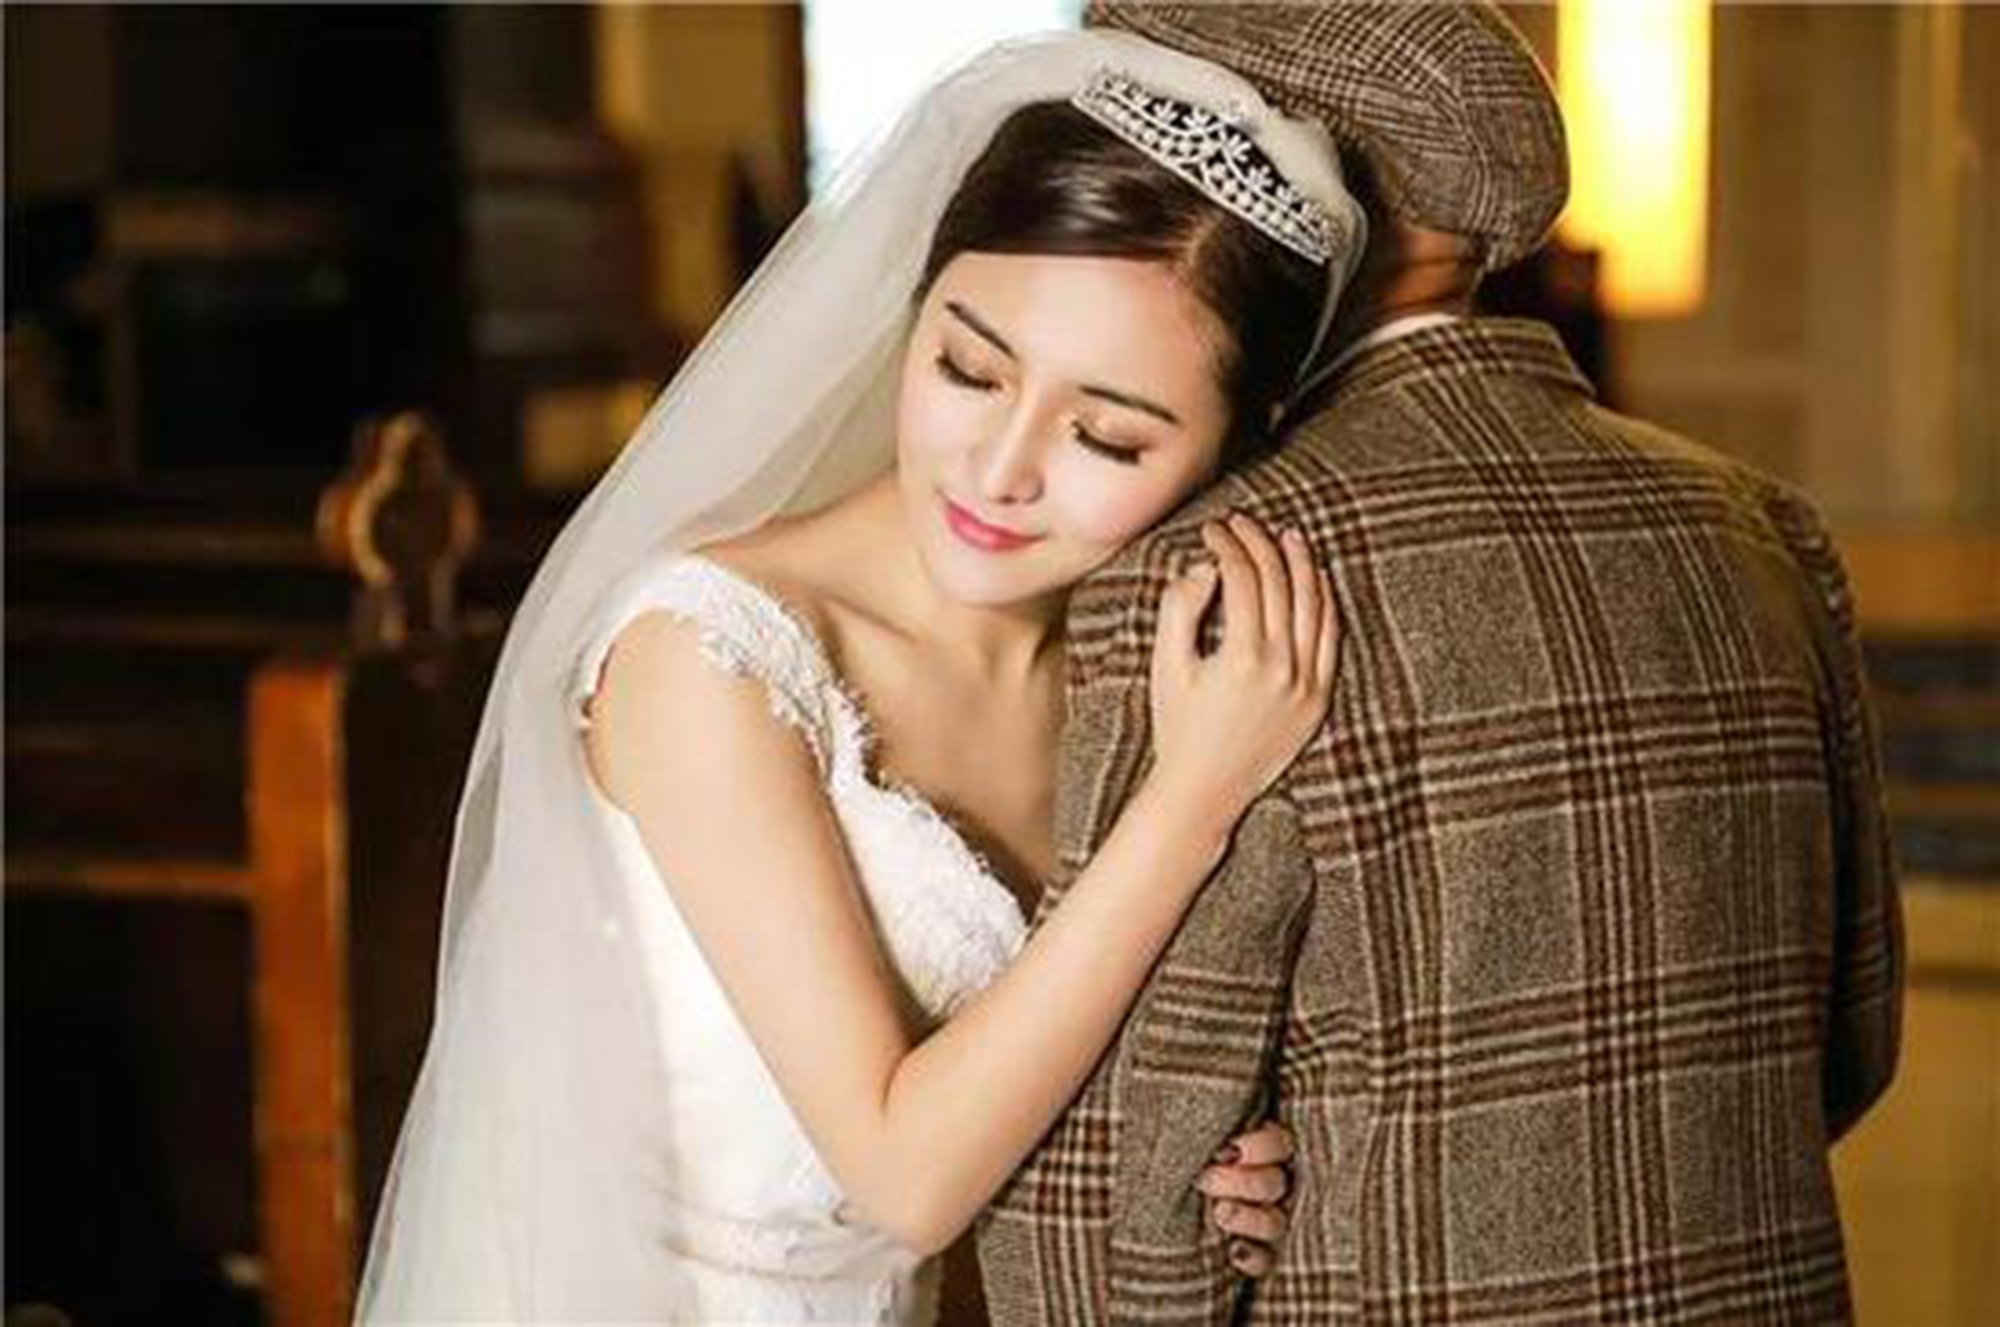 """Pic shows: The woman Fu Xuewei and her grandfather Fu Qiquan's 'wedding photos' A pretty young single woman???s decision to take wedding photos with her ailing grandad has made national headlines in China and her pictures have been shared thousands of times. The granddaughter named Fu Xuewei, who is still single, said she had to take the snaps """"before it was too late"""" - in case her beloved grandparent is taken by illness. The 25-year-old from Chengdu, capital of Sichuan Province in south-western China, wore a gorgeous white gown with a long train, while her 87-year-old grandad Fu Qiquan dressed smartly in two differently coloured suits. The photos which have gained tens of thousands of likes on social media show them inside a church as well as in a photo studio. Xuewei, who said they also played Felix Mendelssohn???s ???Wedding March??? during the shoot, later also tattooed a portrait of her grandad on her forearm. She said: """"My grandad suffered a stroke two years ago and was hospitalised again in September last year."""" """"Doctors made it clear to me that his body was failing and he has a heart condition,"""" she said, adding: """"I worried one day he suddenly won???t be here any more."""" Xuewei???s grandad essentially raised her on his own after her parents divorced while she was still a child, she said. Xuewei explained that since she has no plans to get married in the near future, she wanted to take the wedding snaps so """"the most important person"""" in her life would see her walk down the aisle in a white gown. """"I wanted him to see me at my most beautiful,"""" she said. Social media users have given the pair their blessings, with many sharing stories of the close relationships they had with their own grandfathers. (ends)"""